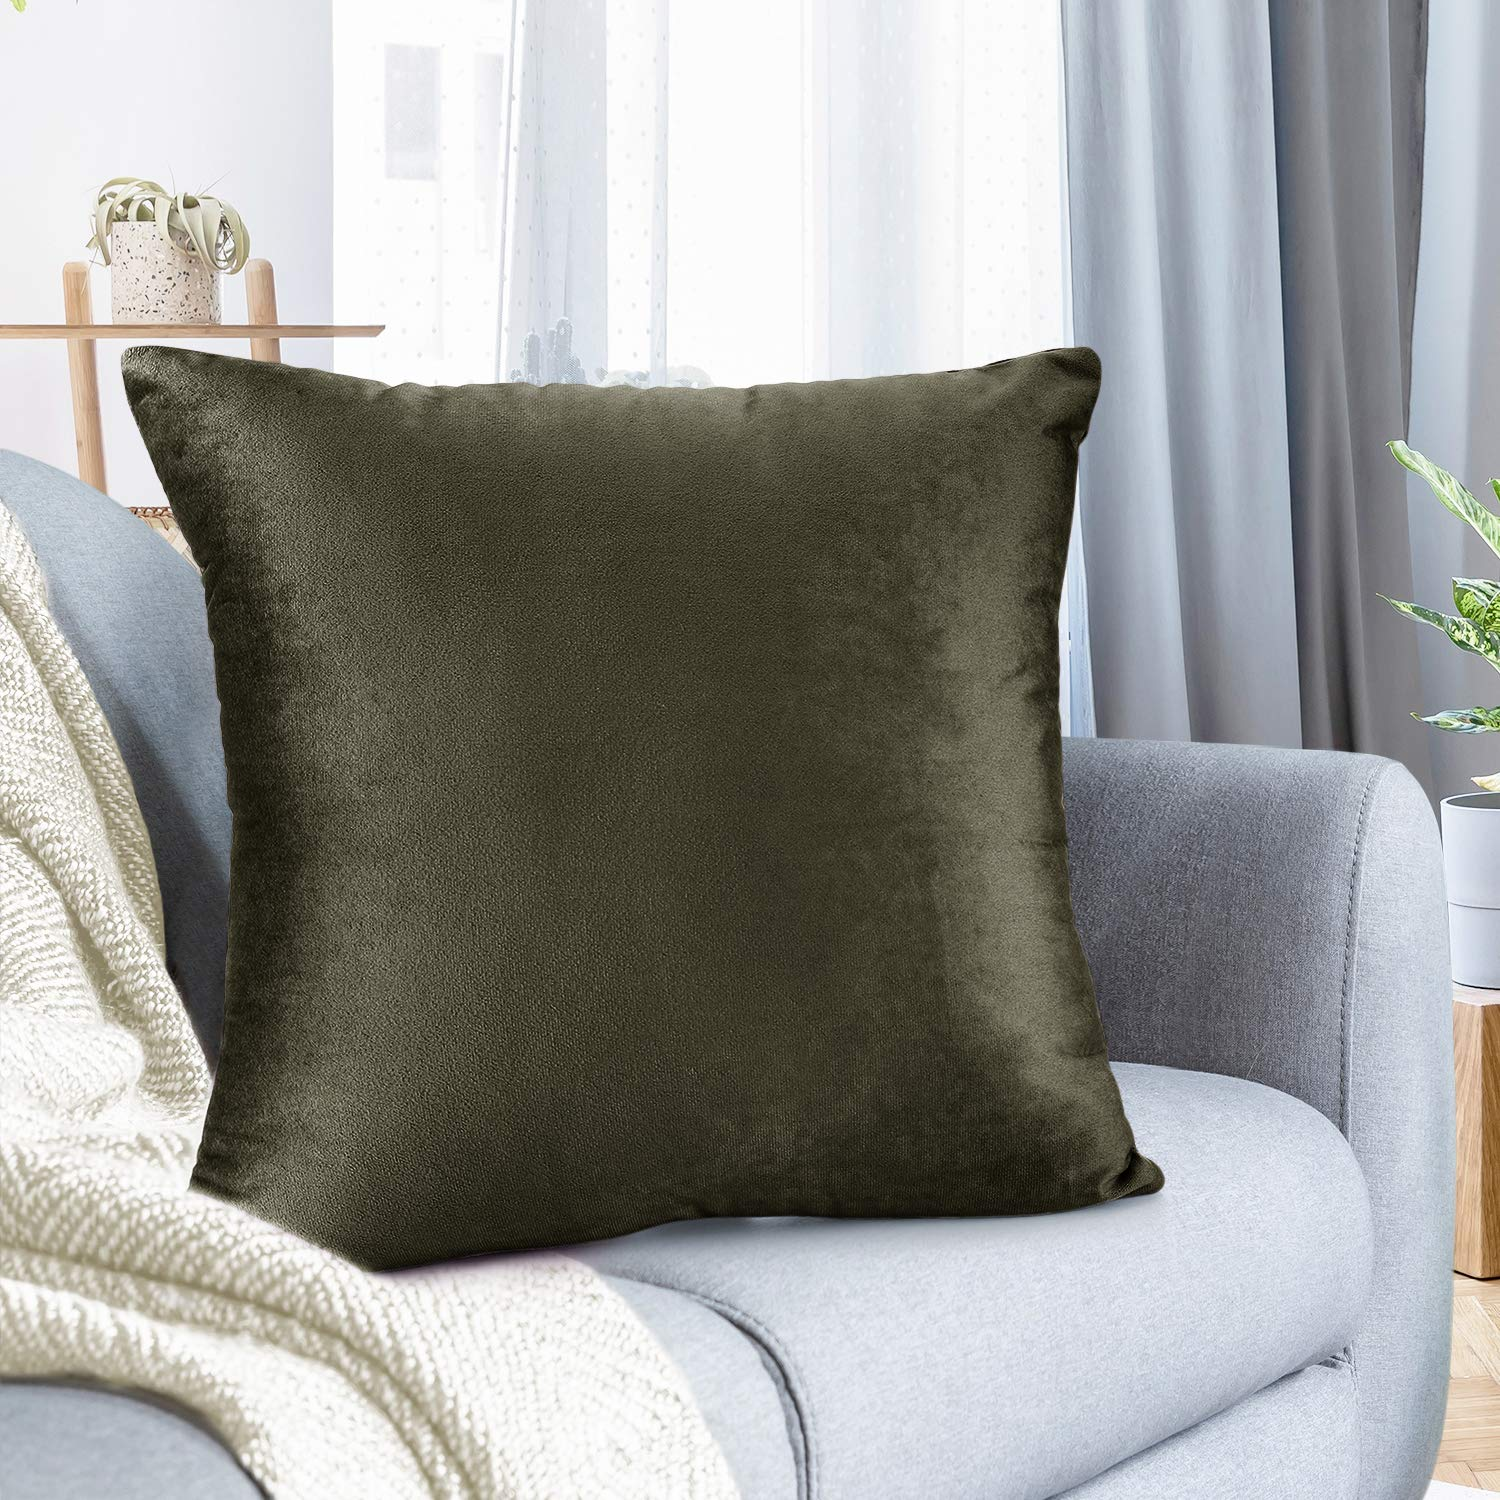 """Nestl Bedding Throw Pillow Cover 16"""" x 16"""" Soft Square Decorative Throw Pillow Covers Cozy Velvet Cushion Case for Sofa Couch Bedroom - Khaki"""